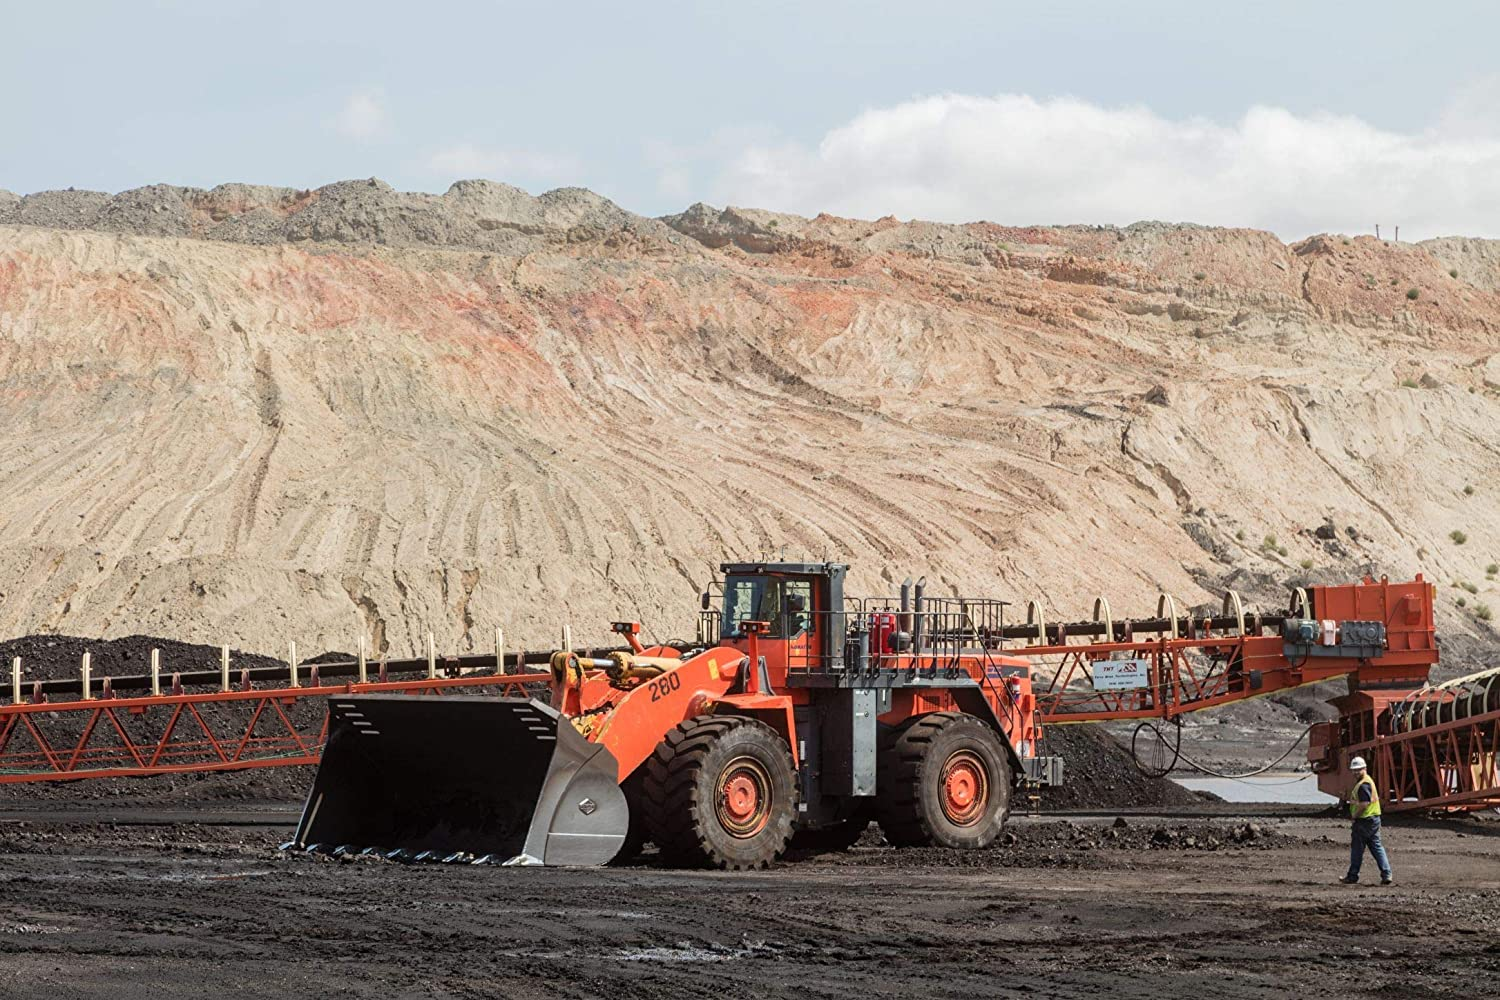 24 x 36 Giclee Print ofMassive Machinery at Work in The Open-Pit Wyodak Coal Mine in The Coal-Rich Powder River Basin Outside Gillette Wyoming y71 2015 Highsmith